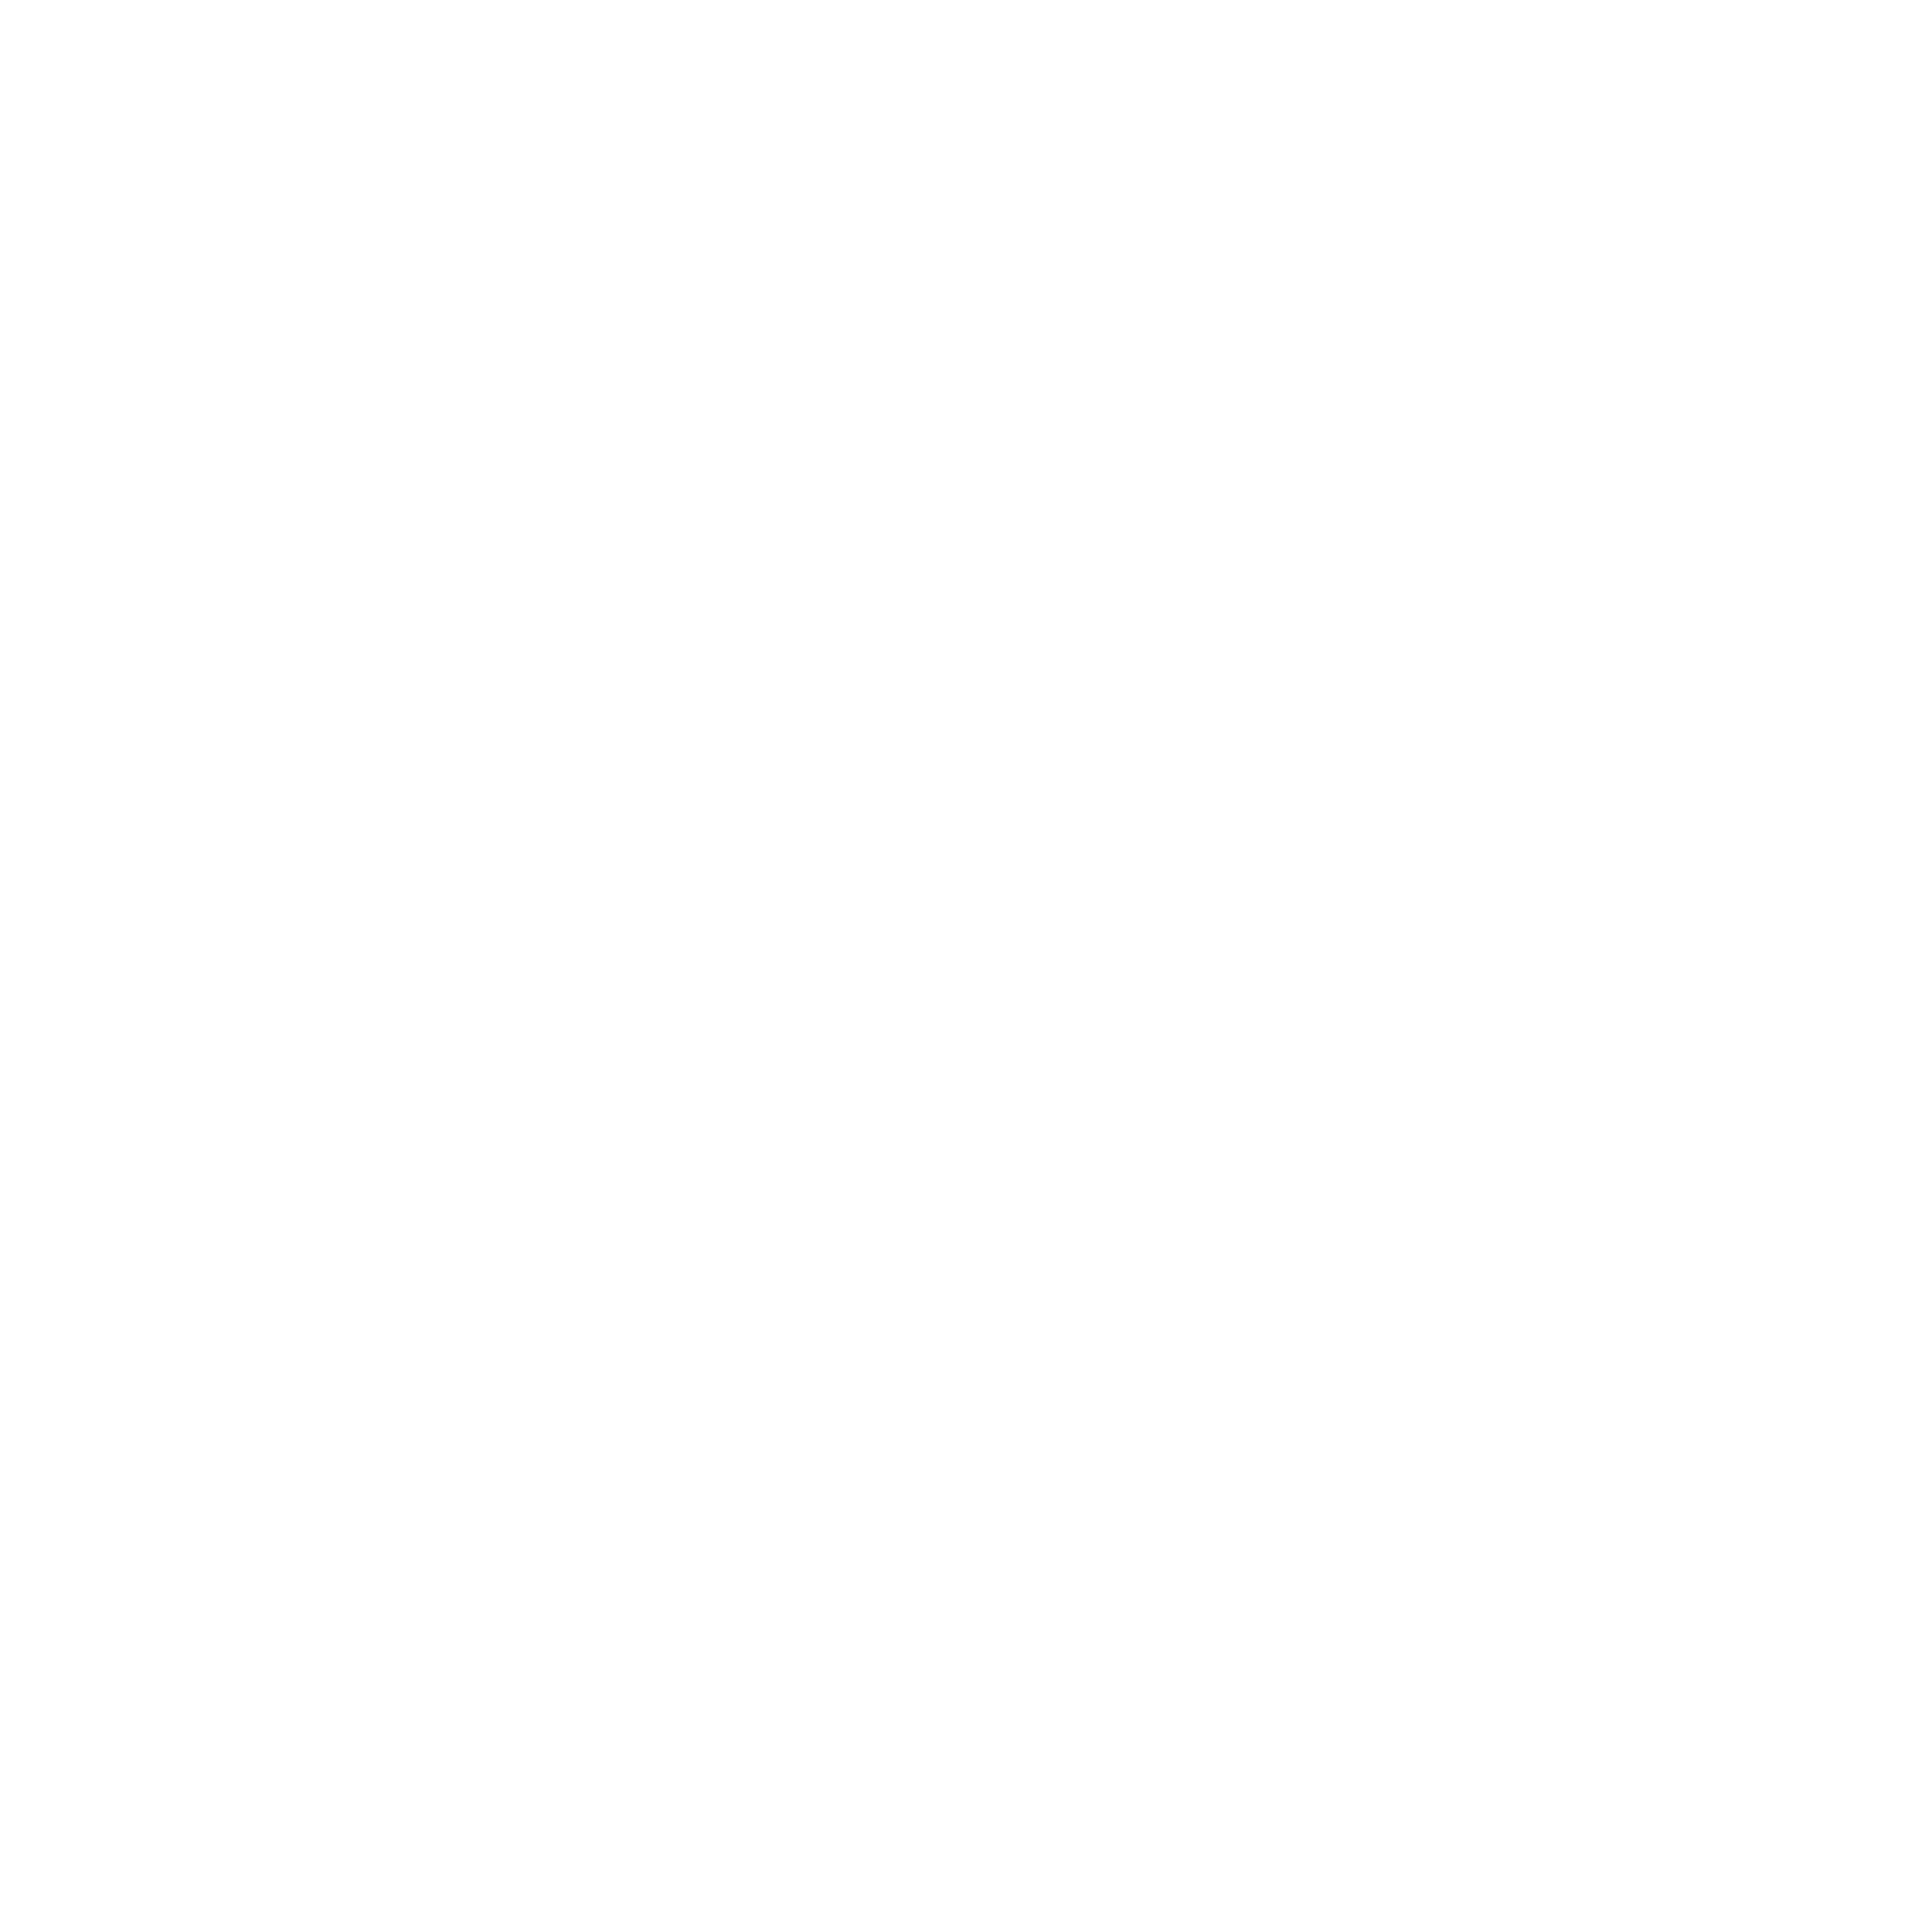 samsung logo png transparent amp svg vector freebie supply